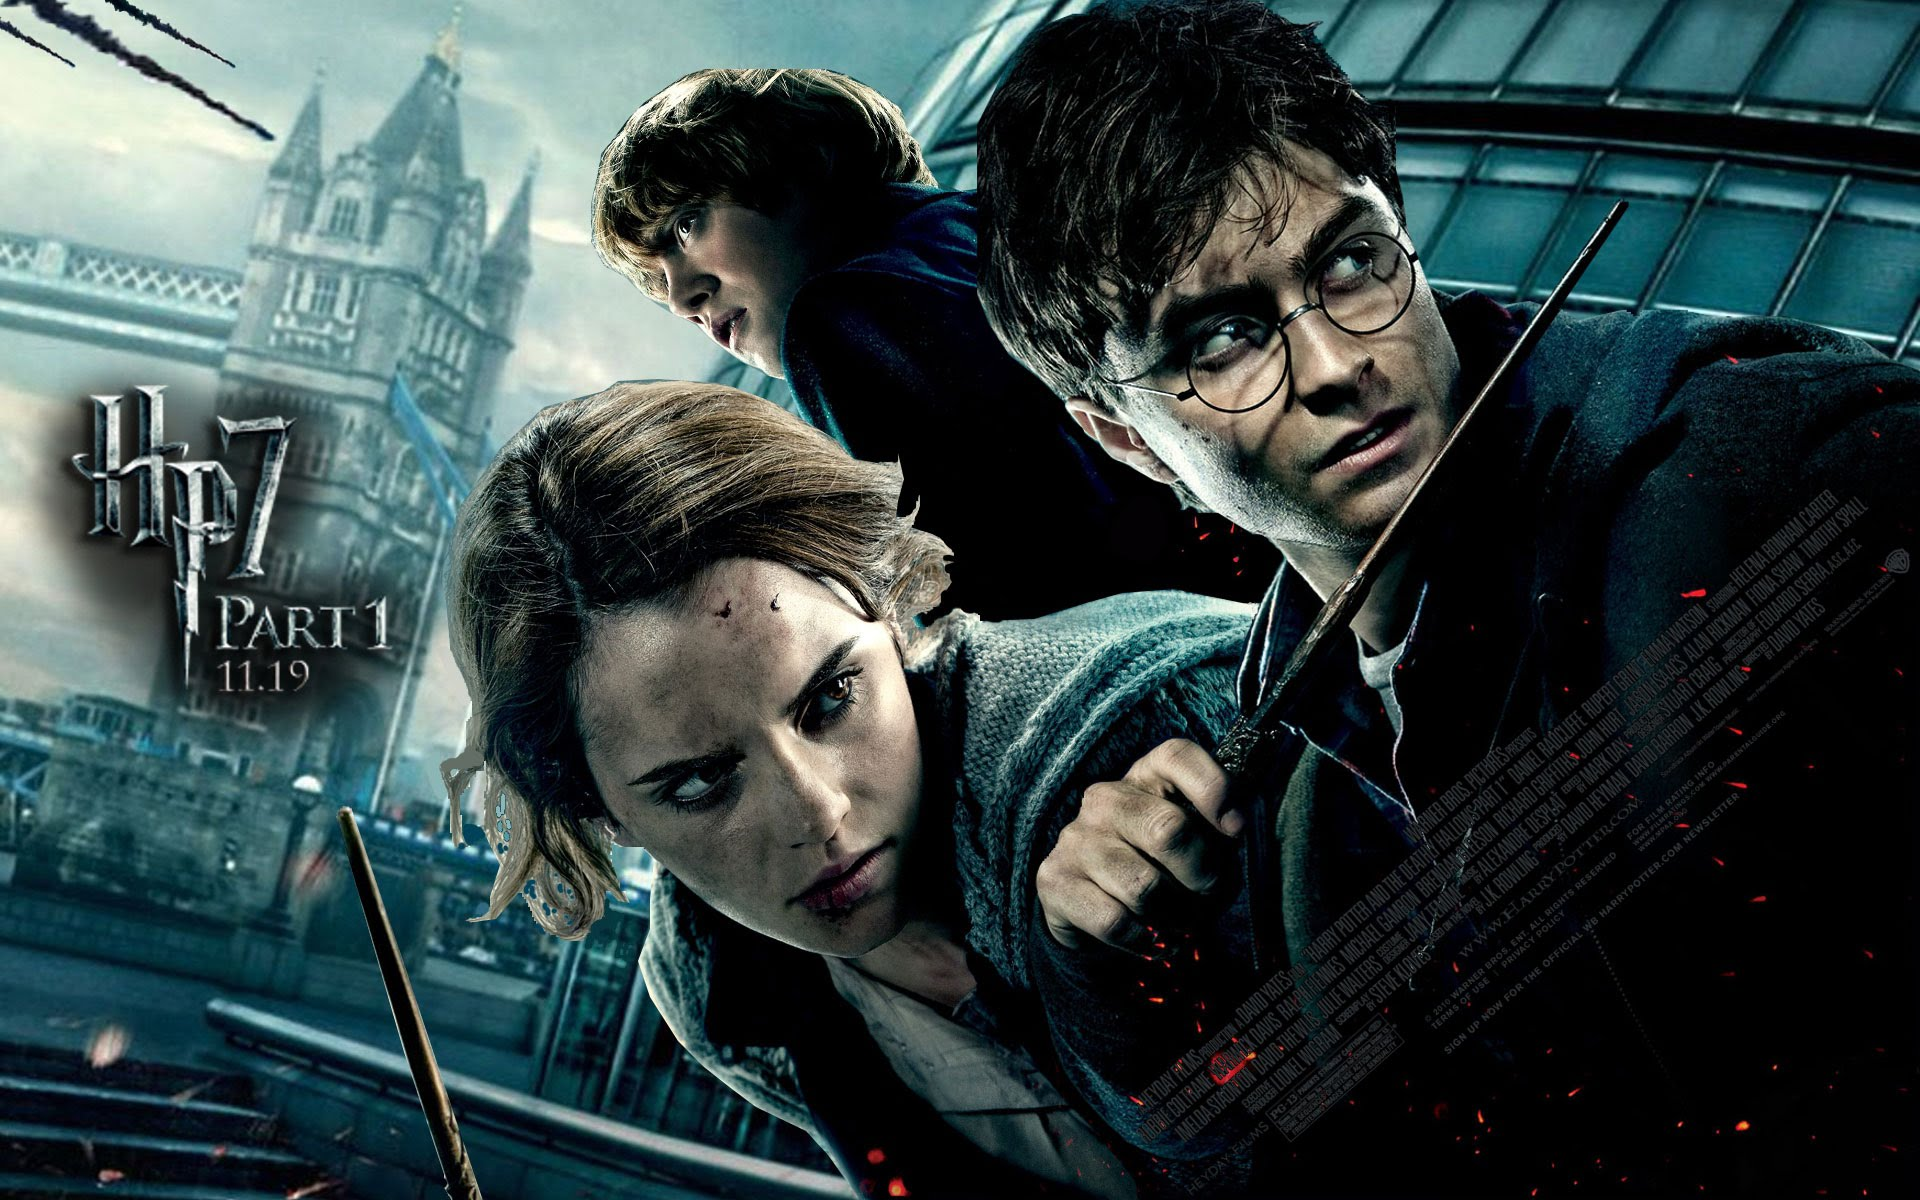 Harry Potter And The Deathly Hallows Potter And The Deathly